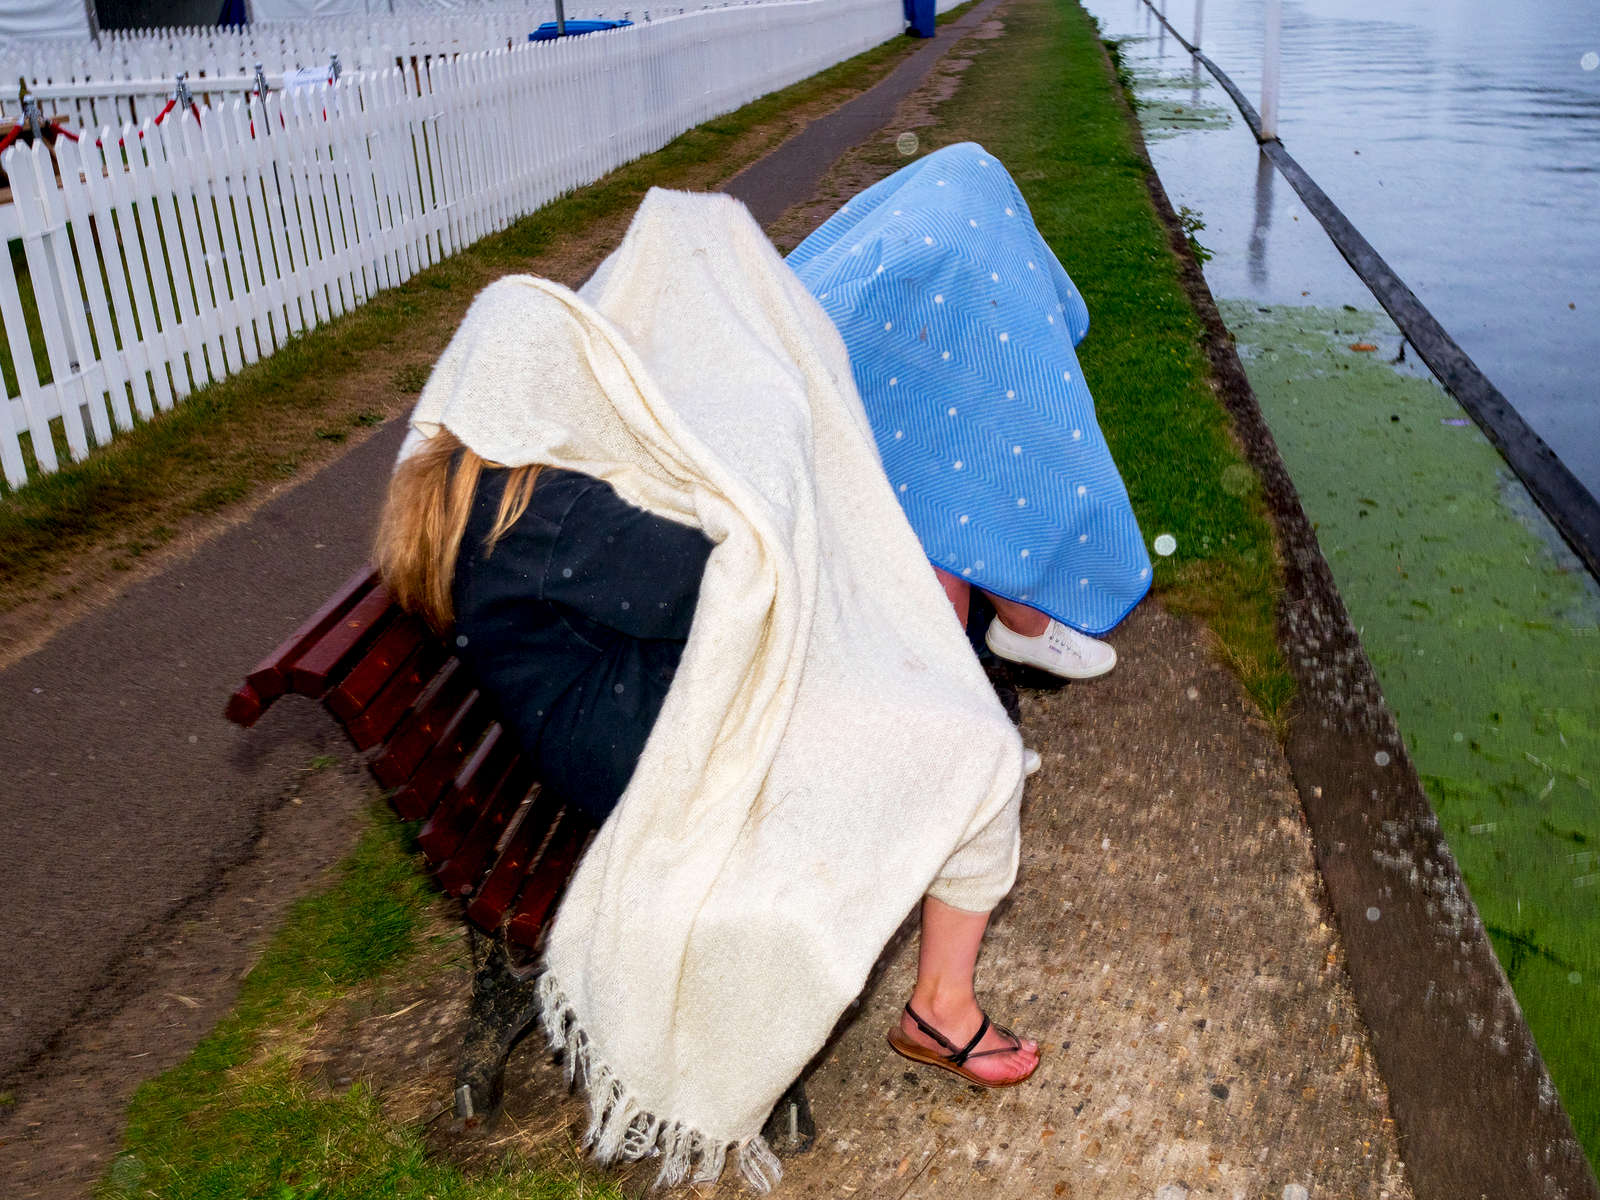 Friends try to keep dry from the rain under balnkets at Henley.Henley Royal Regatta is a rowing event held annually on the River Thames by the town of Henley-on-Thames, England. It was established on 26 March 1839.